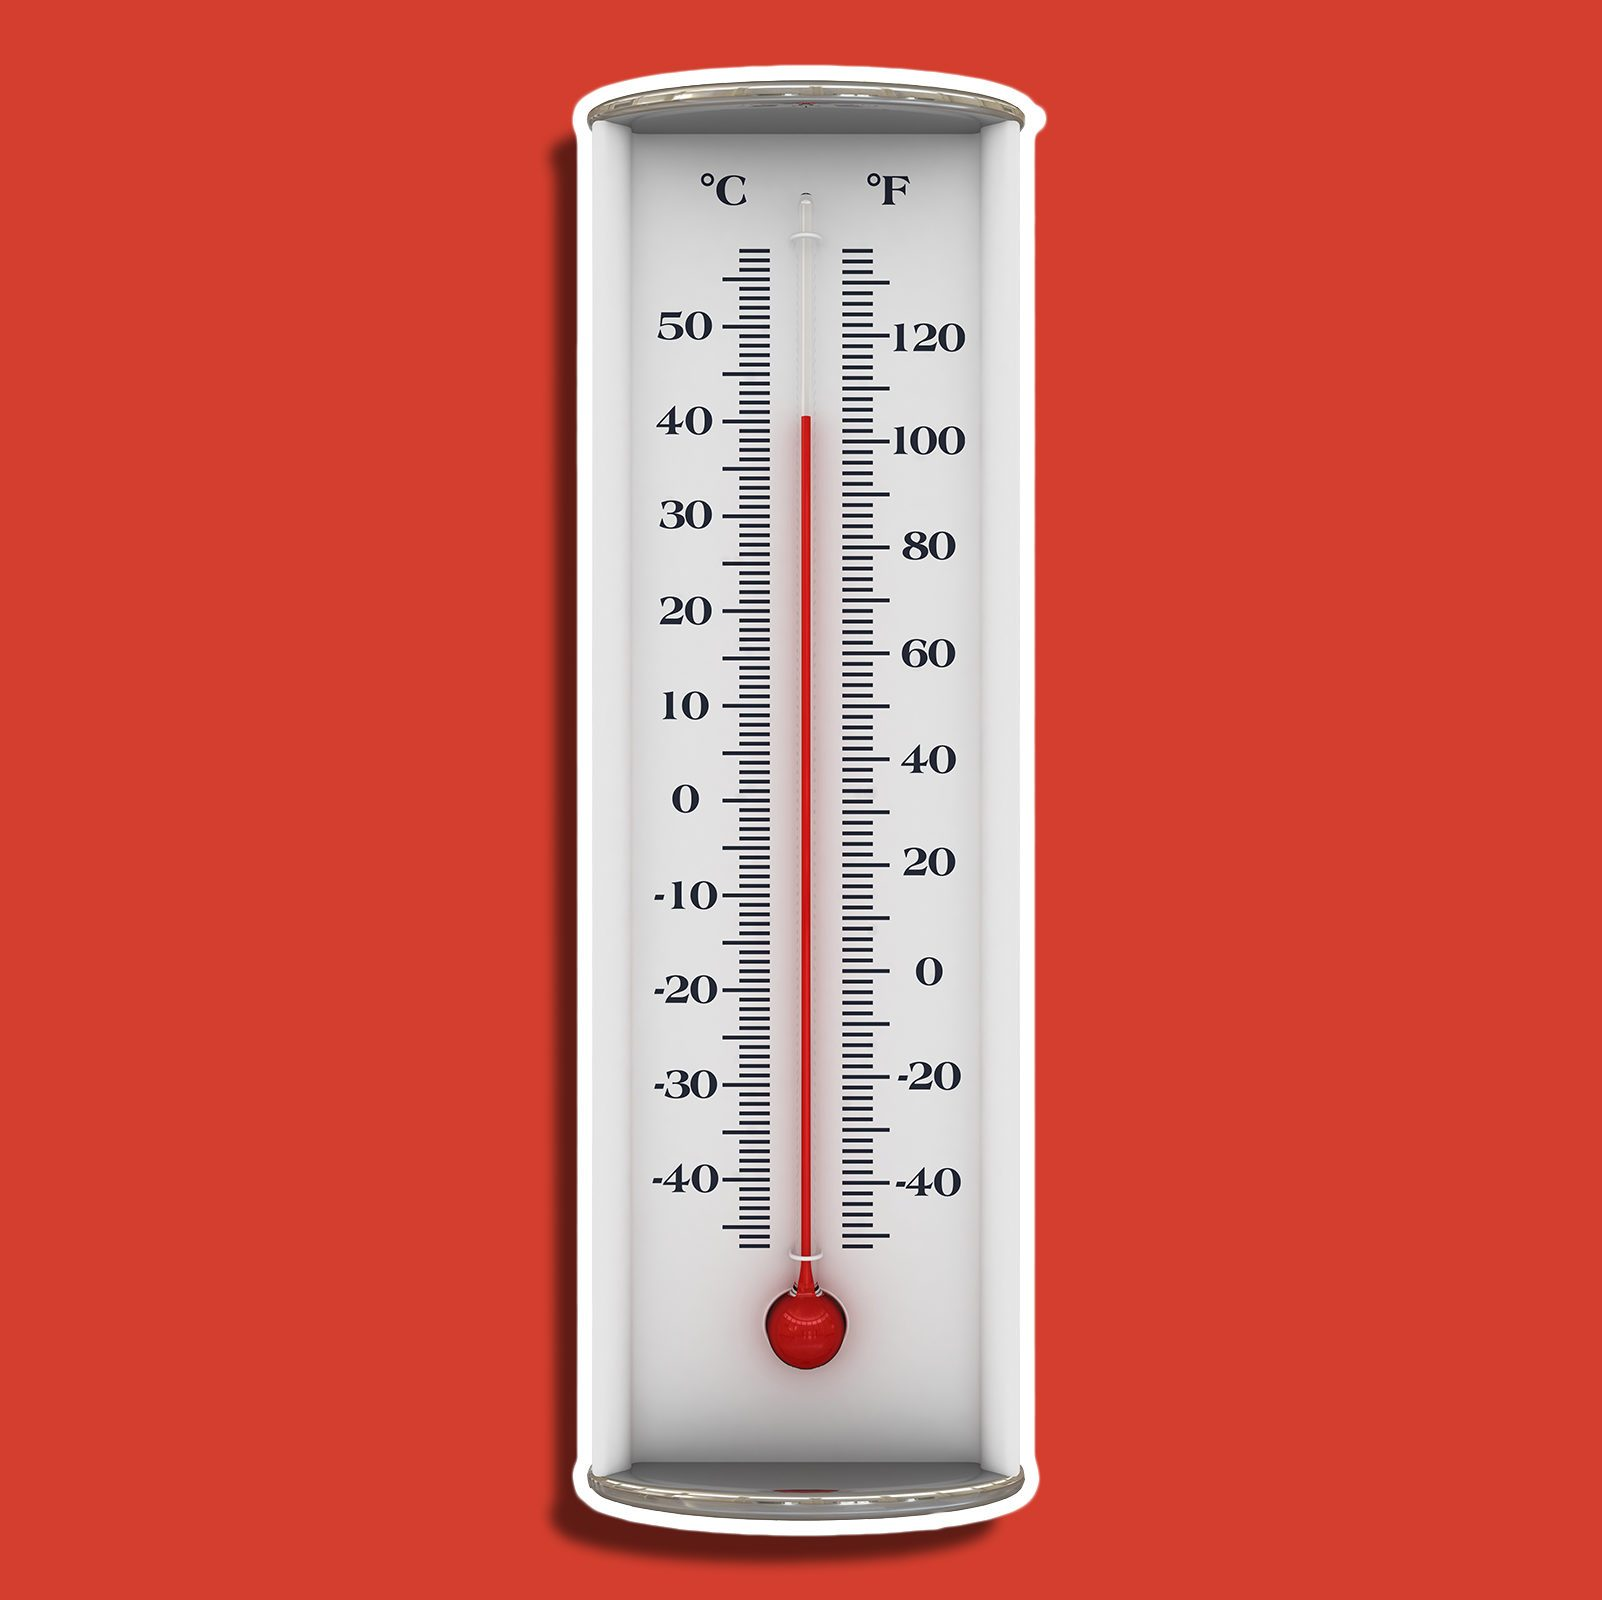 outdoor thermometer on red background